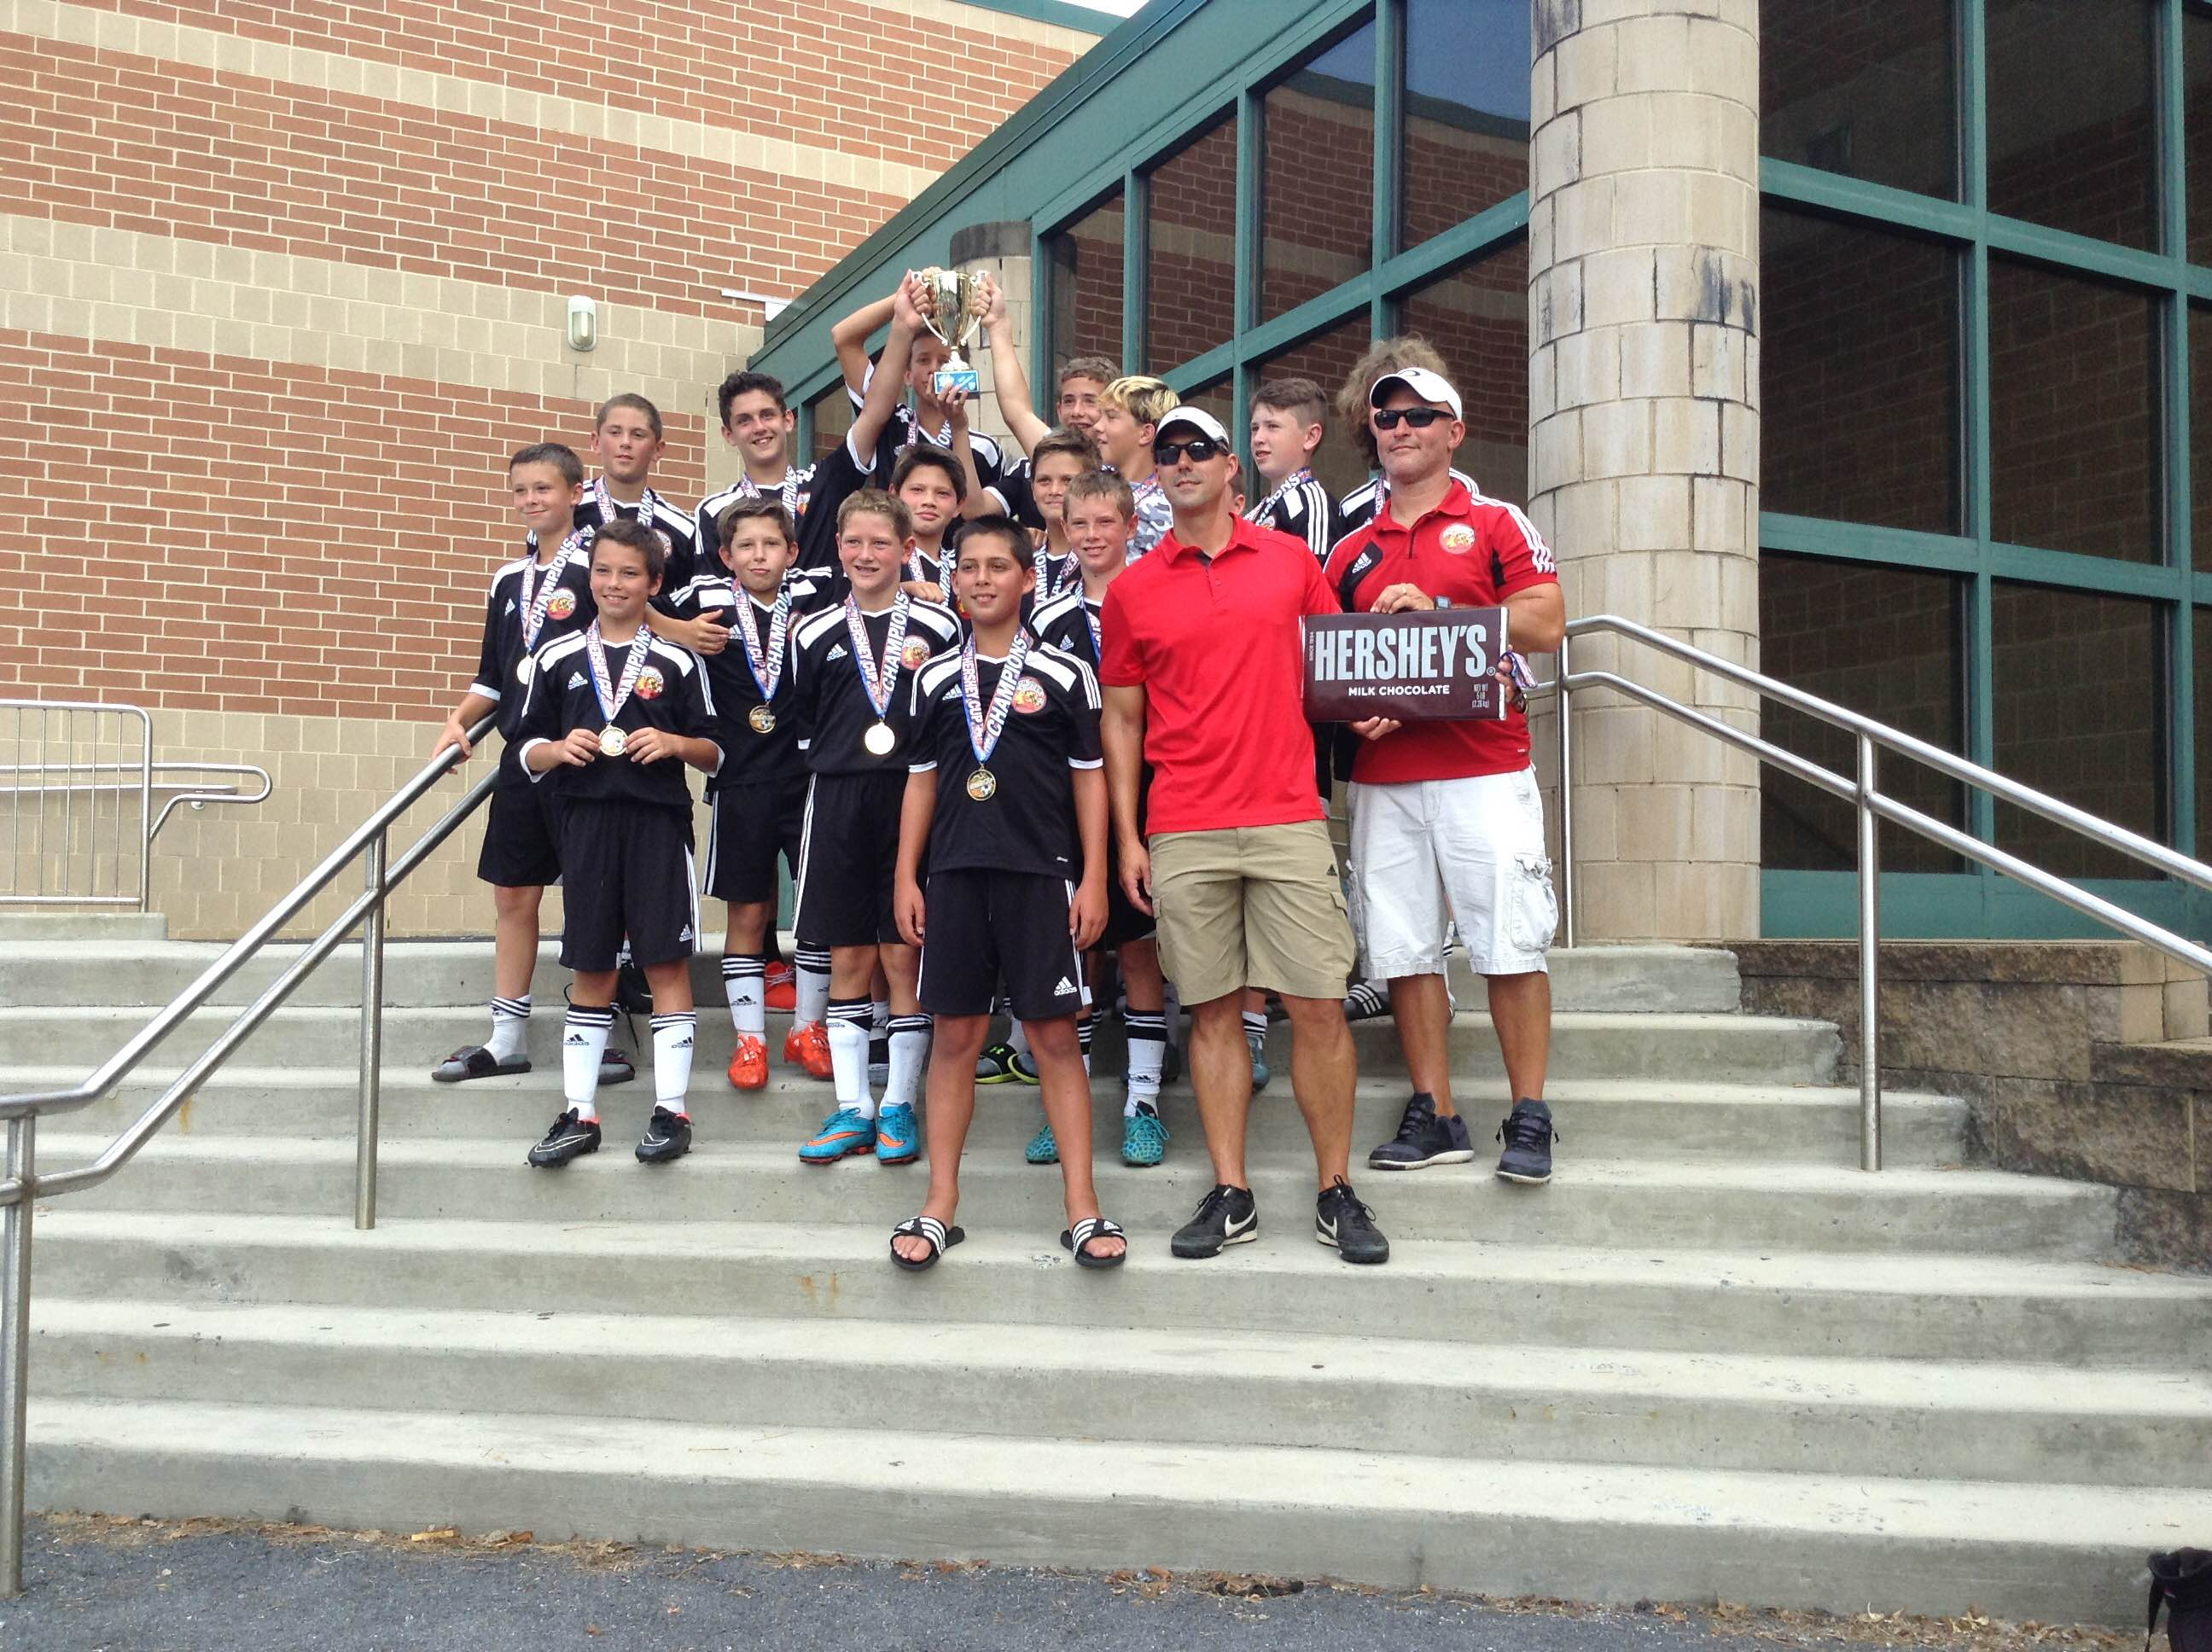 U13 Cecil Arsenal takes 1st place in Hershey Tournament!